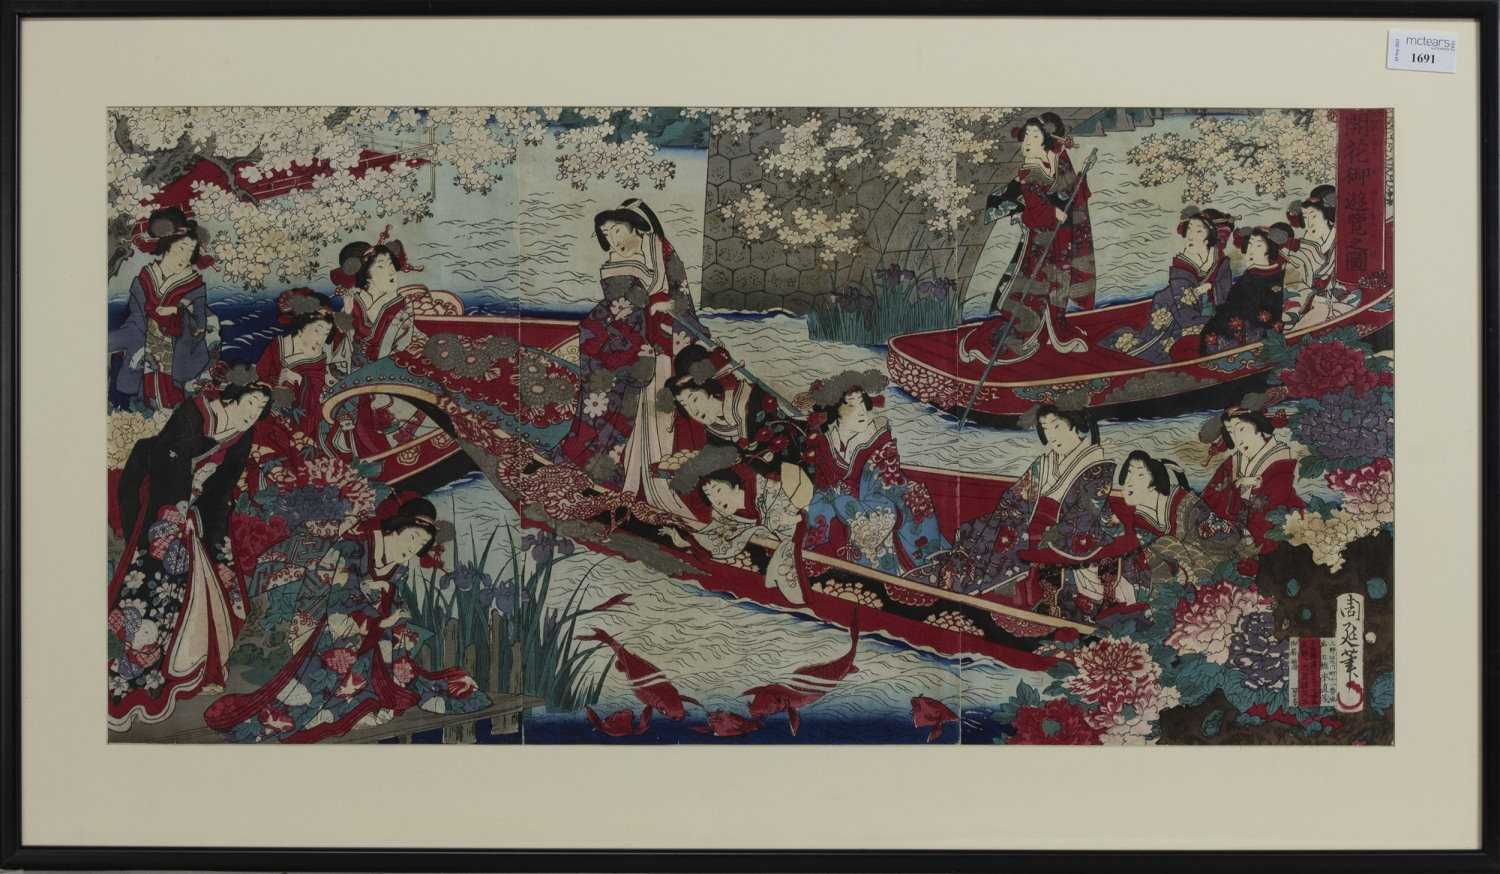 Lot 1691 - AN EARLY 20TH CENTURY JAPANESE WOODBLOCK PRINT TRIPTYCH